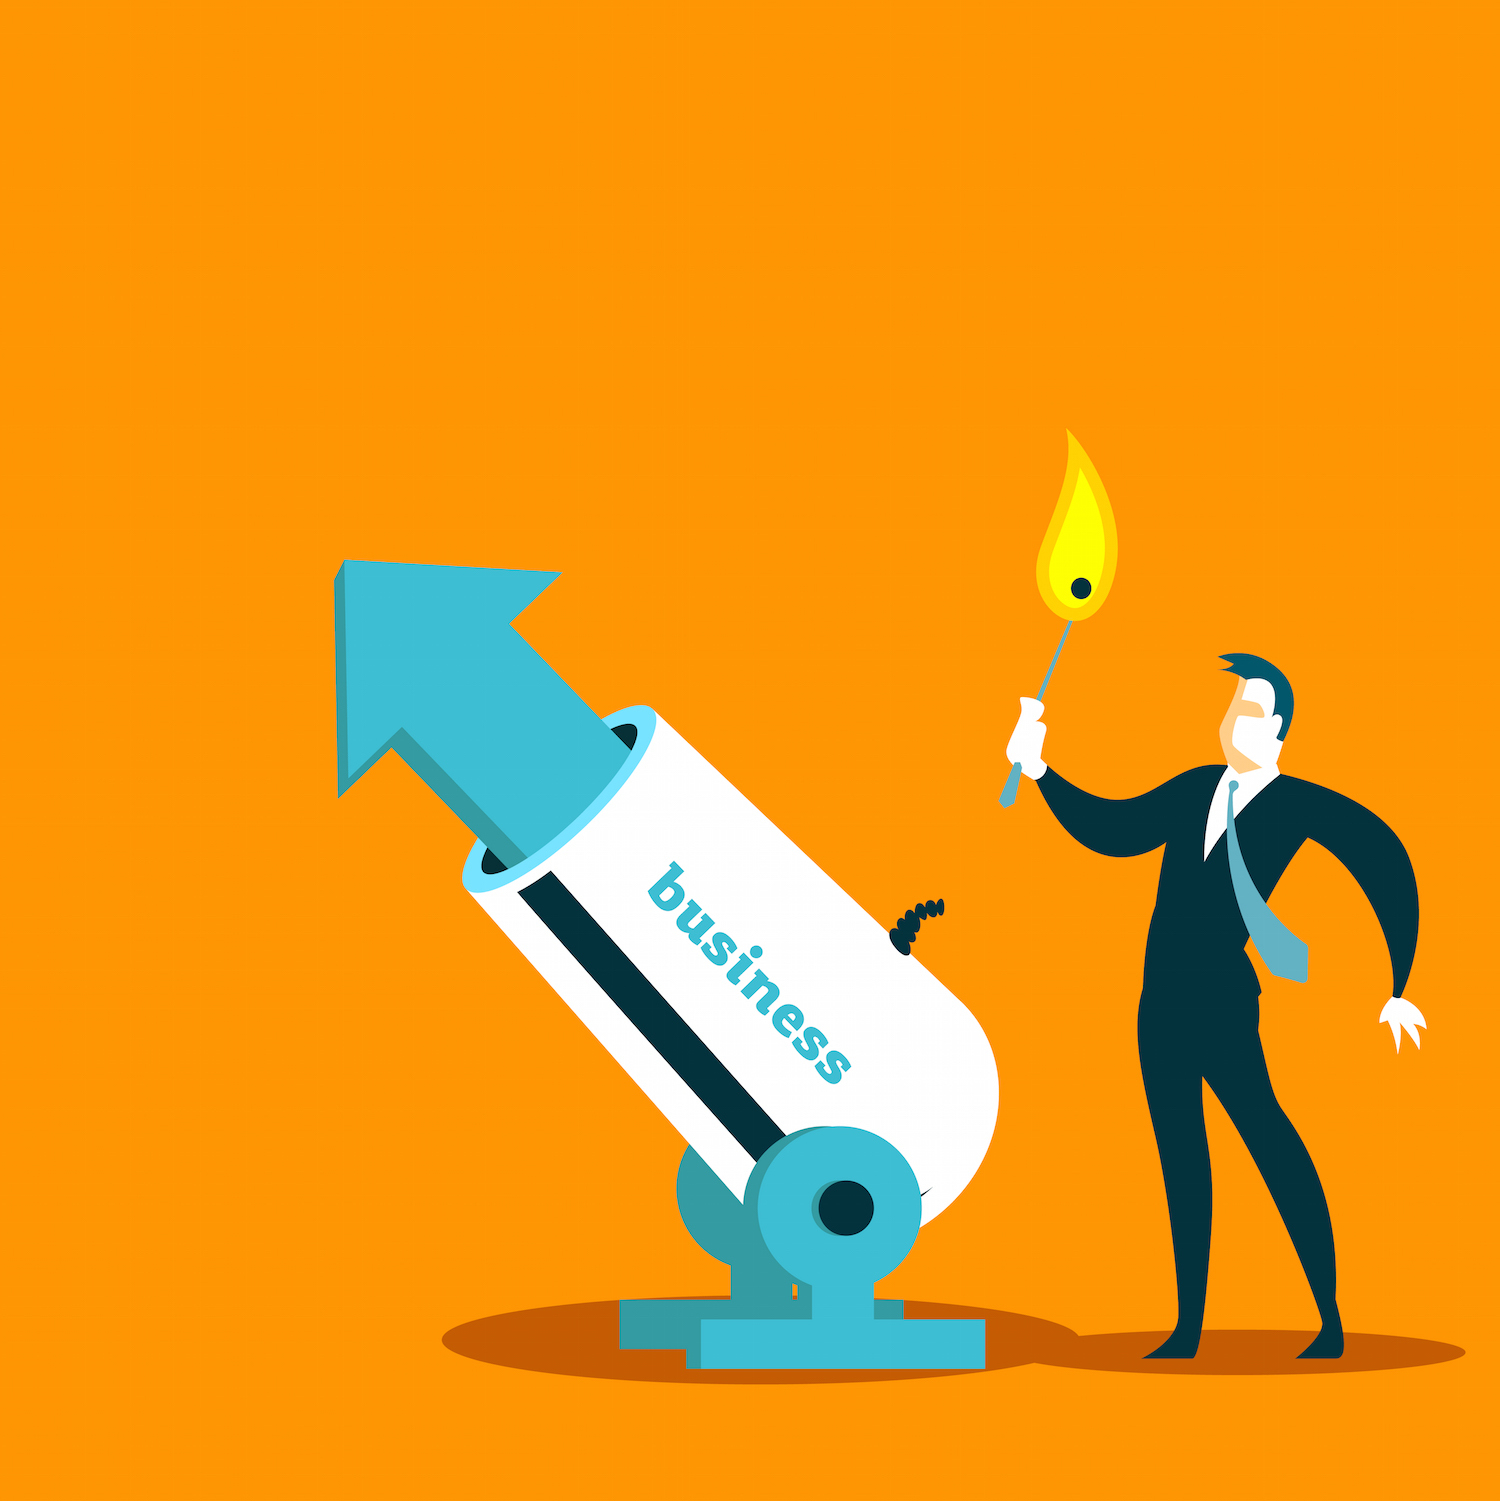 5 Growth Hacking Tools for a Winning Content Marketing